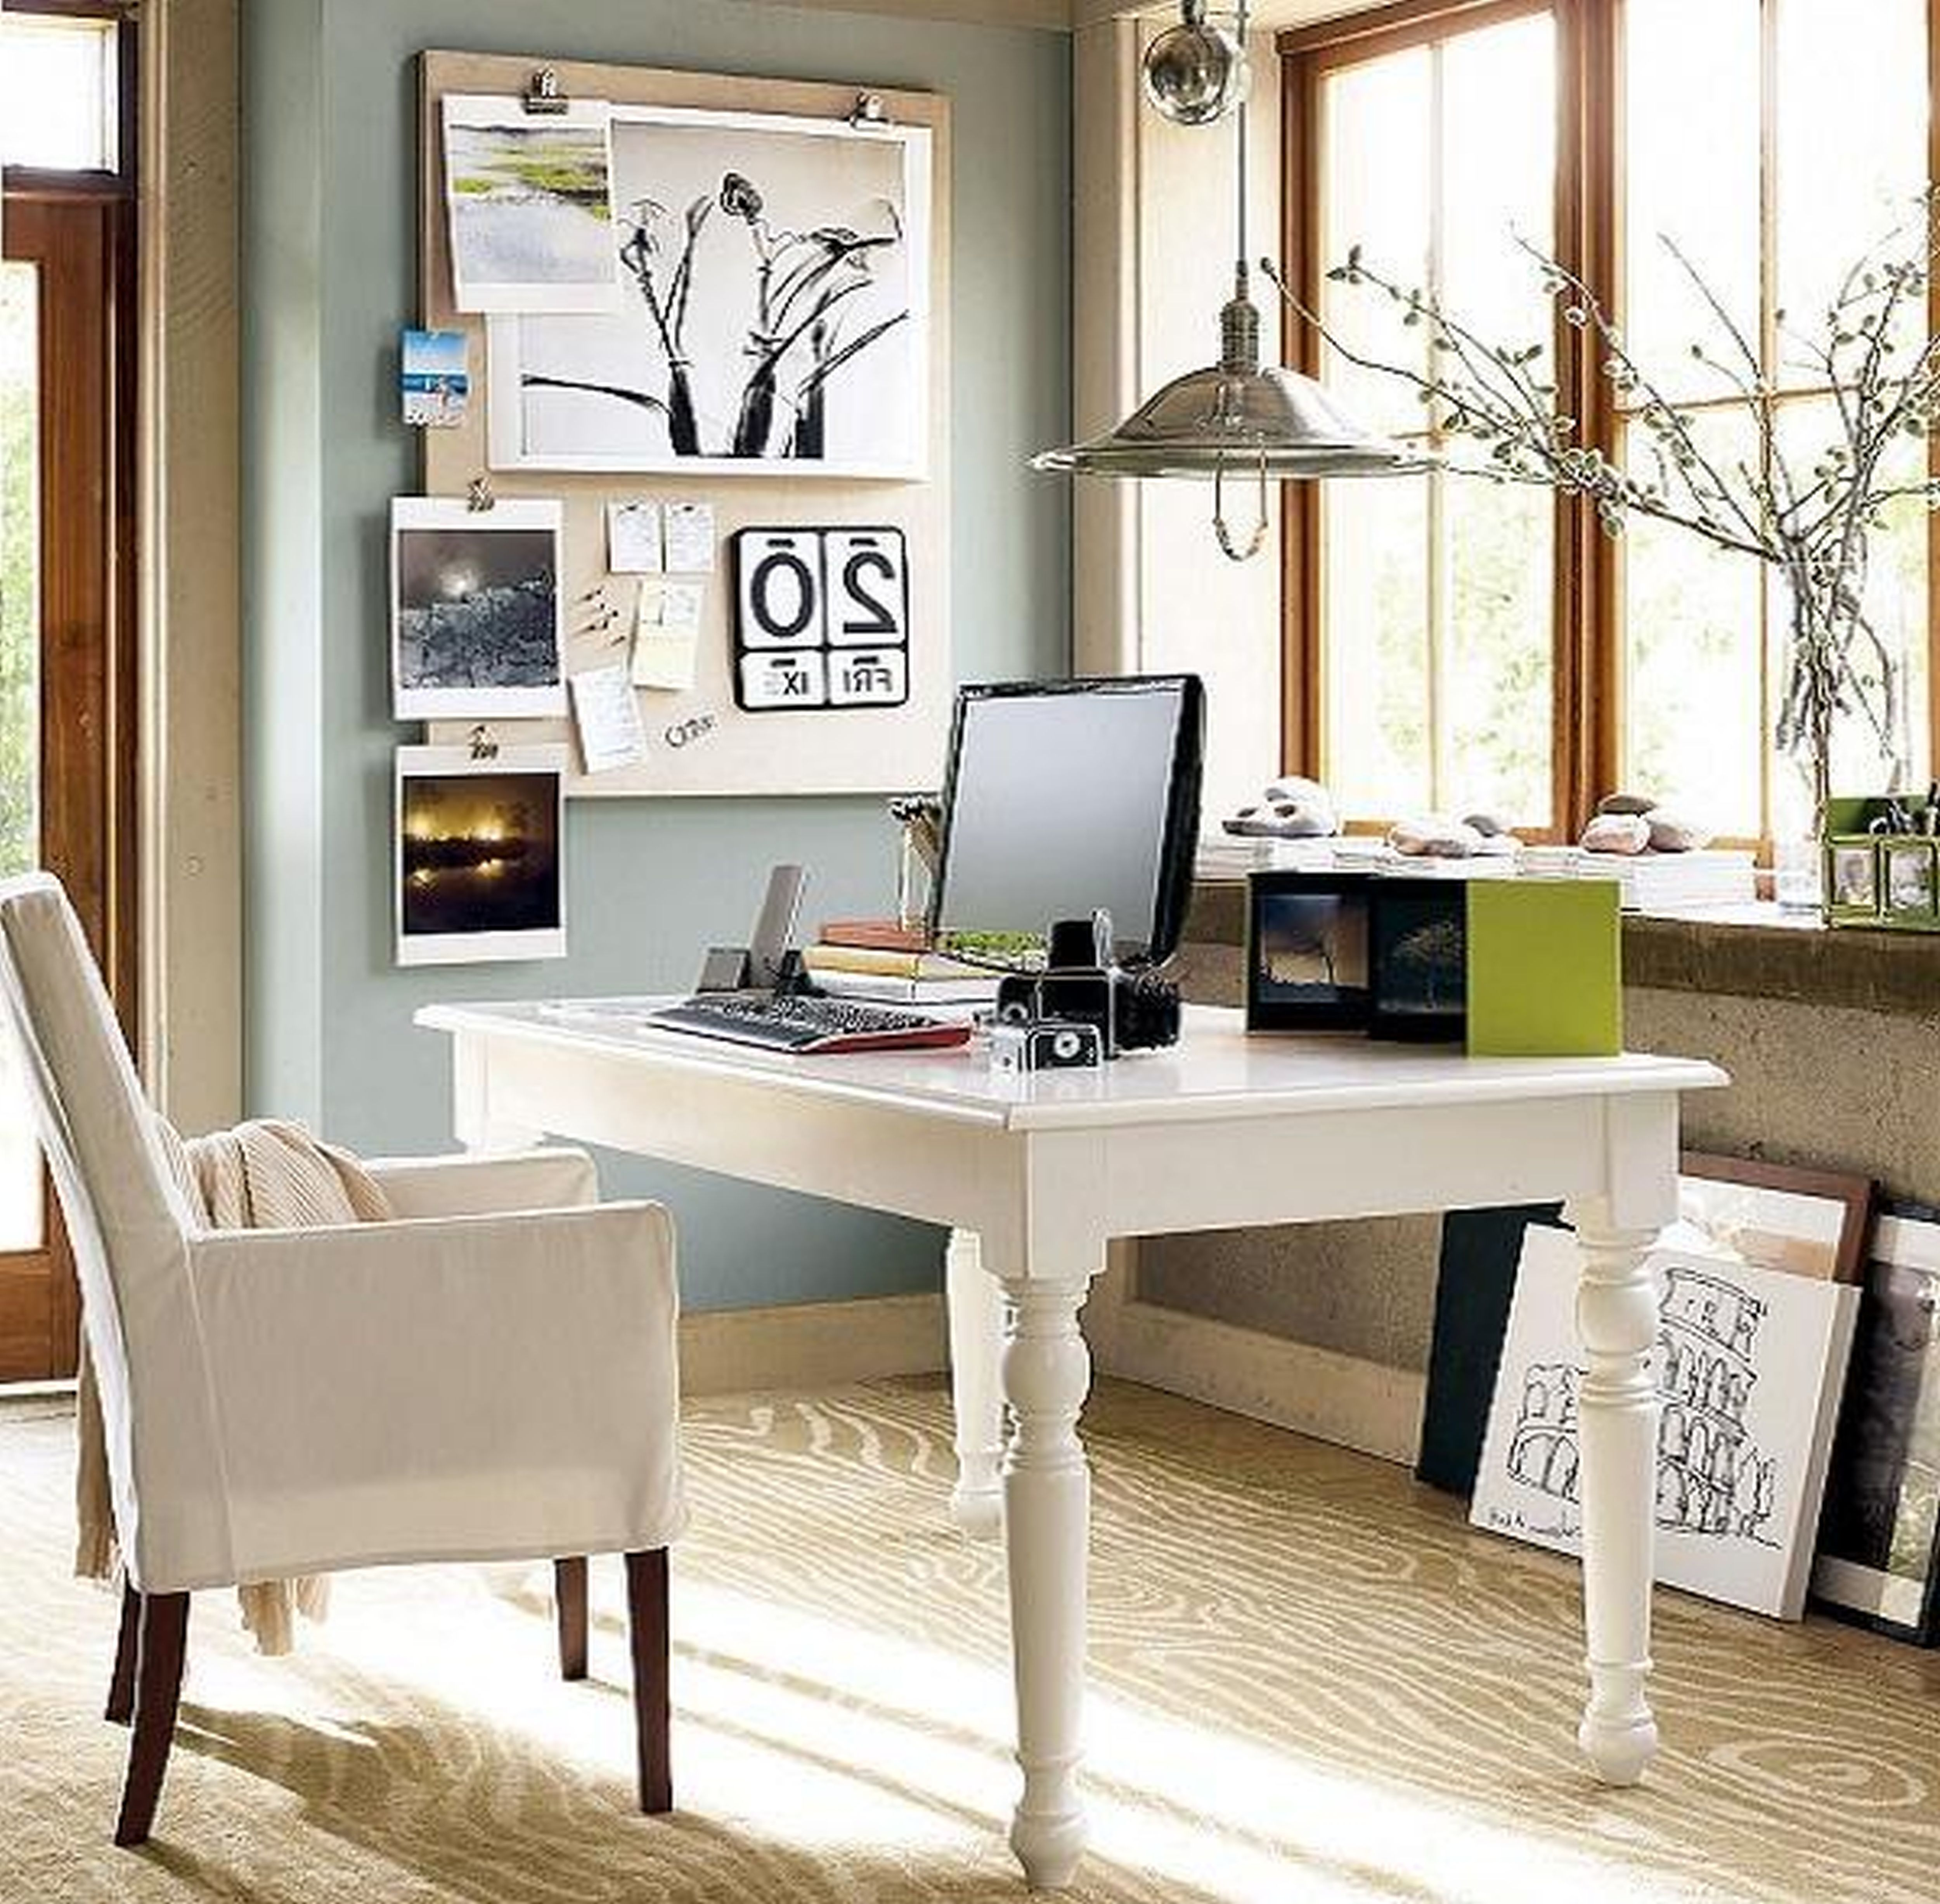 Work In Style With These Home Office Design Tips Lydia S Interiors